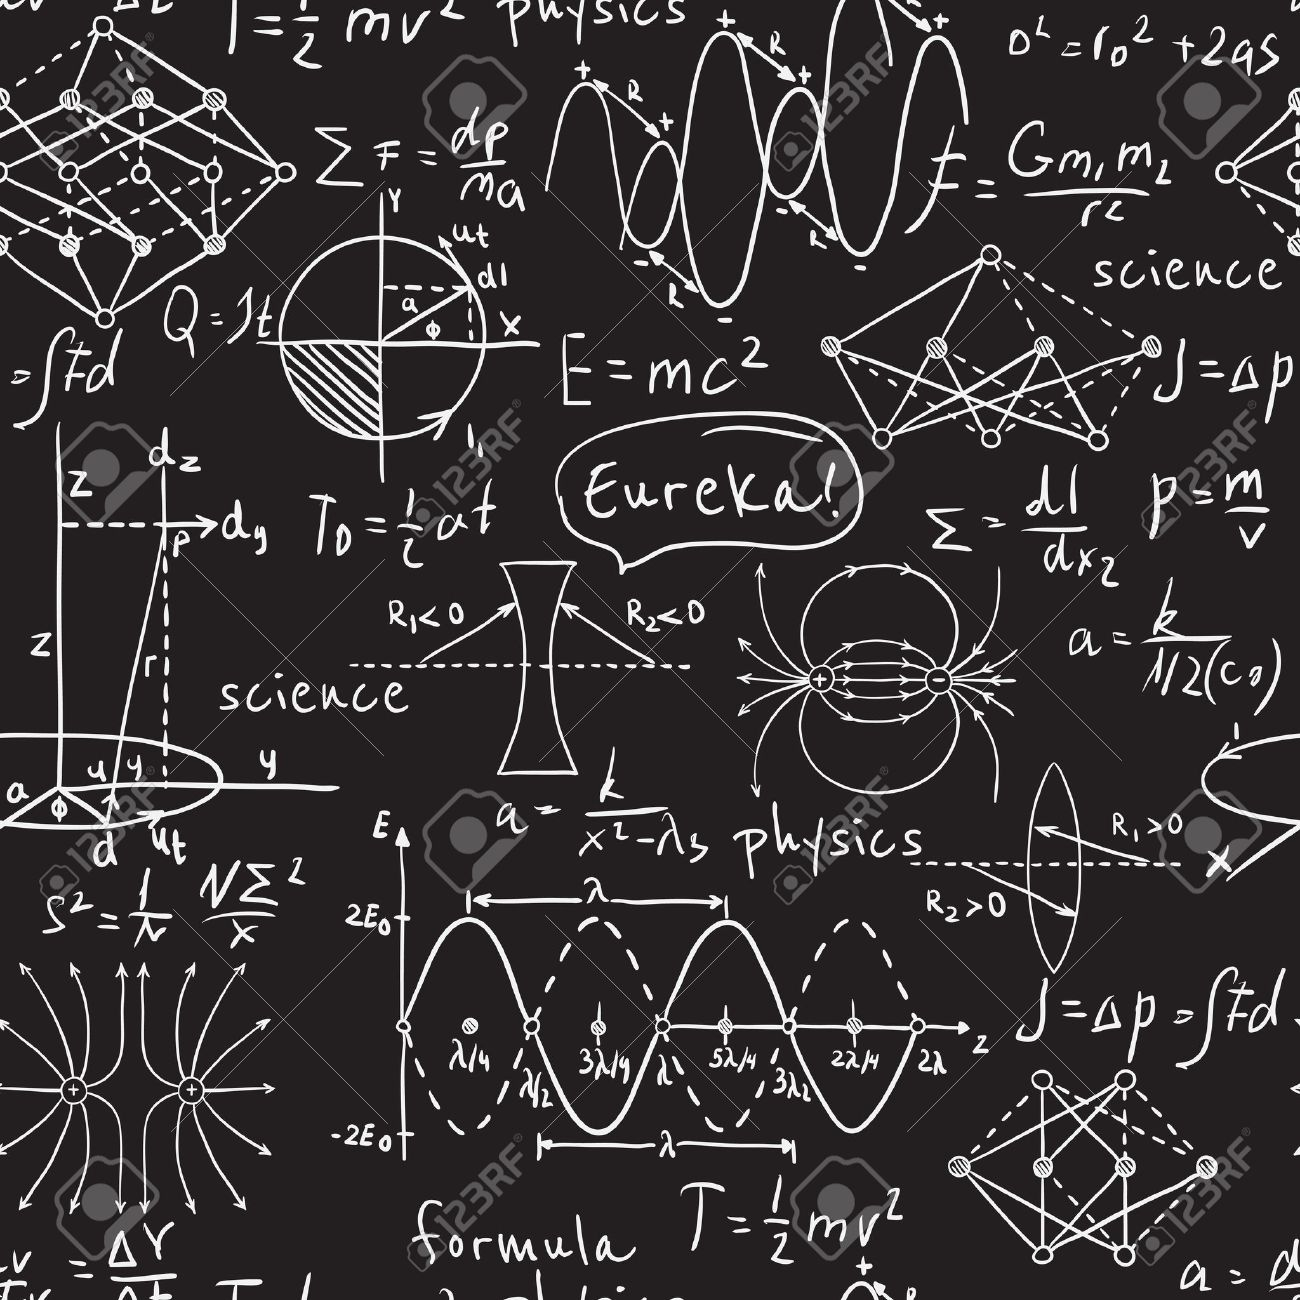 physical formulas graphics and scientific calculations on chalkboard vintage hand drawn illustration laboratory seamless